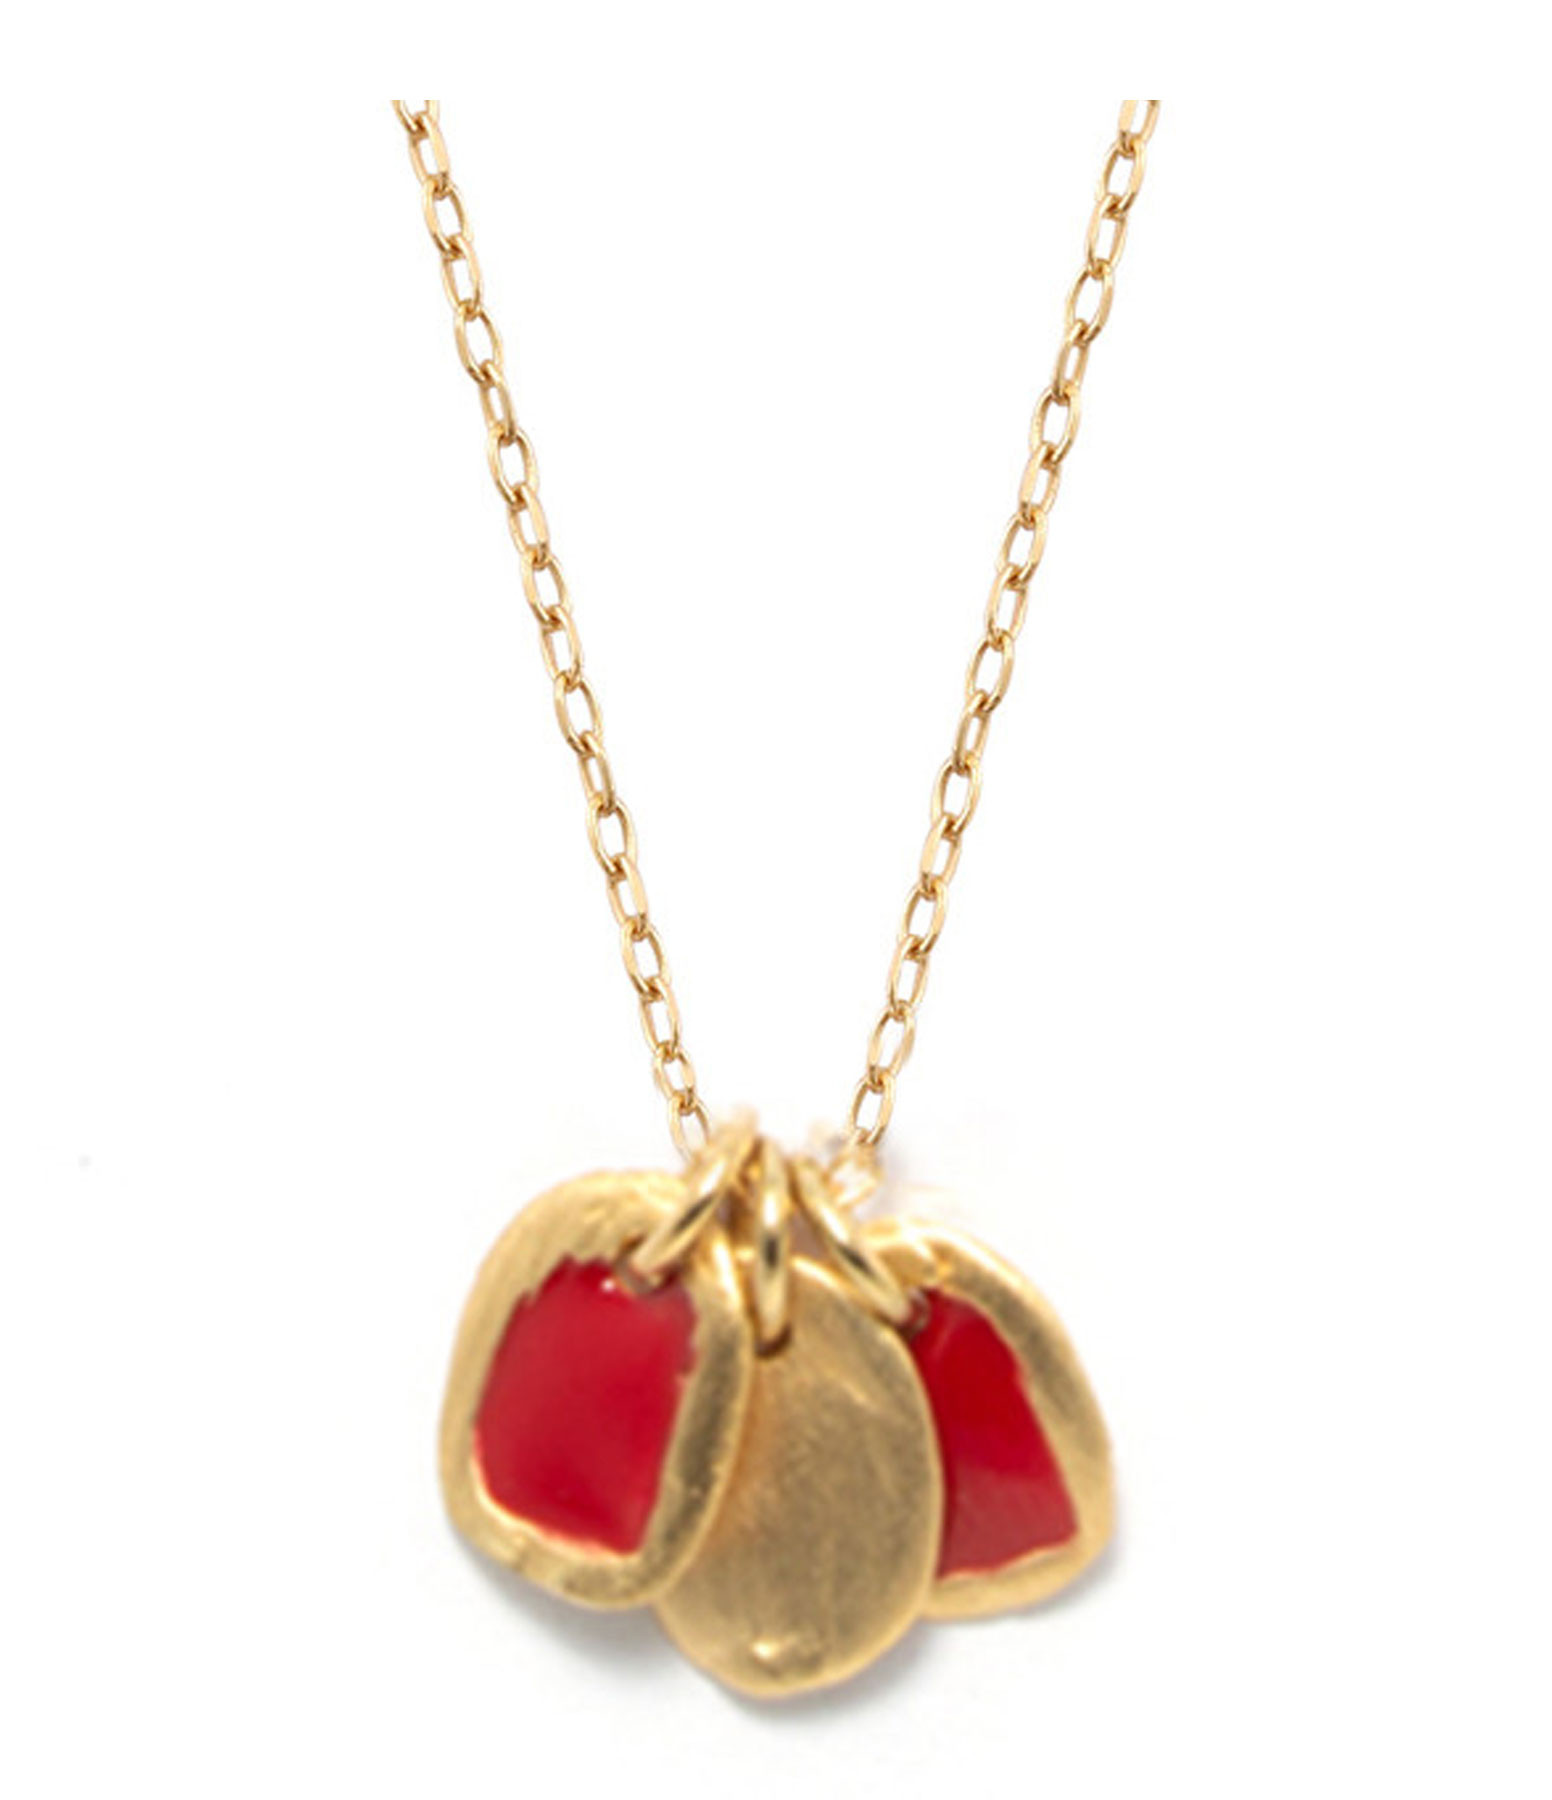 LSONGE - Collier Lumy 3 Médailles XS Rouge